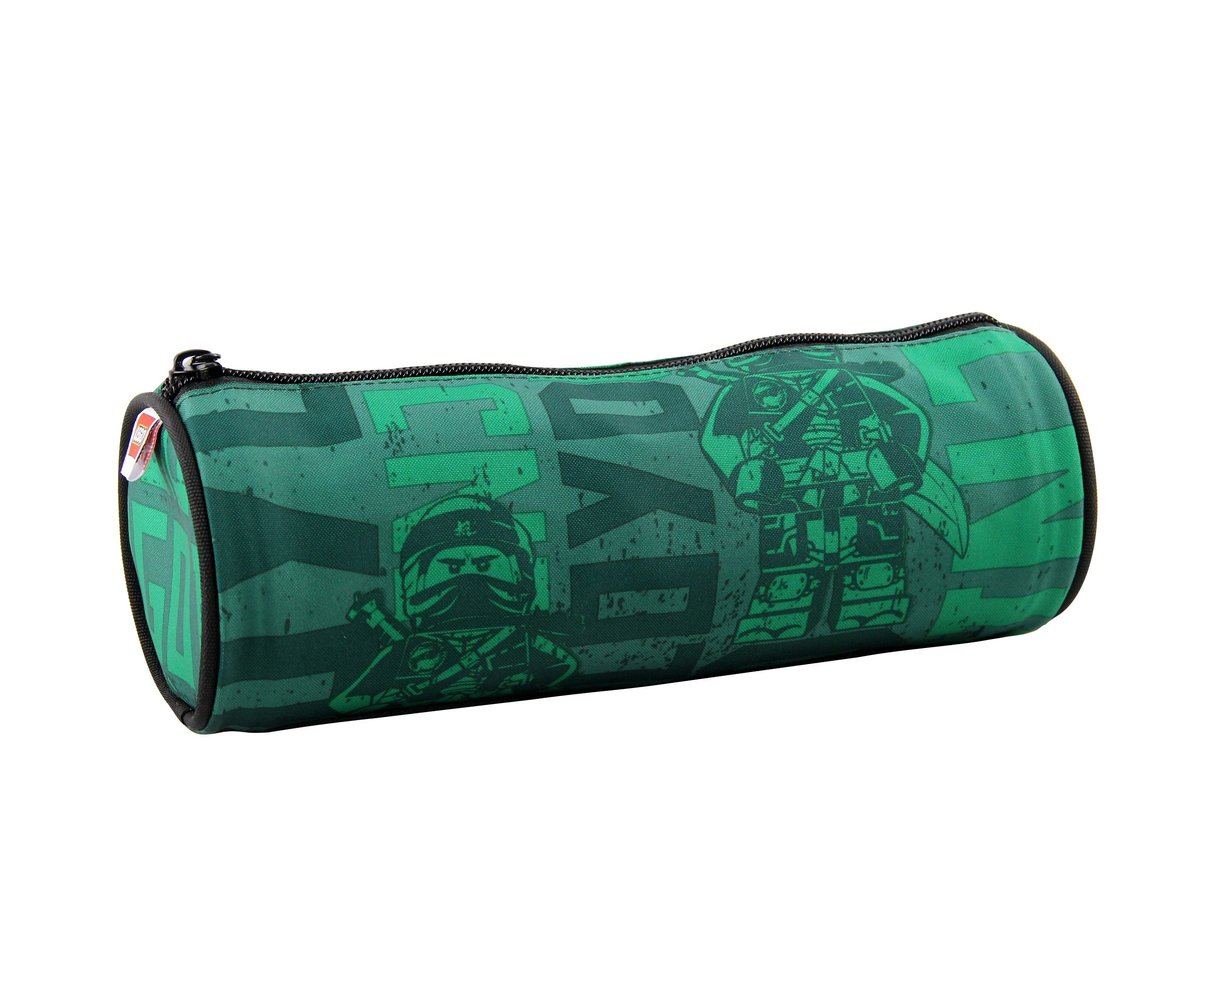 NINJAGO Pencil Roll